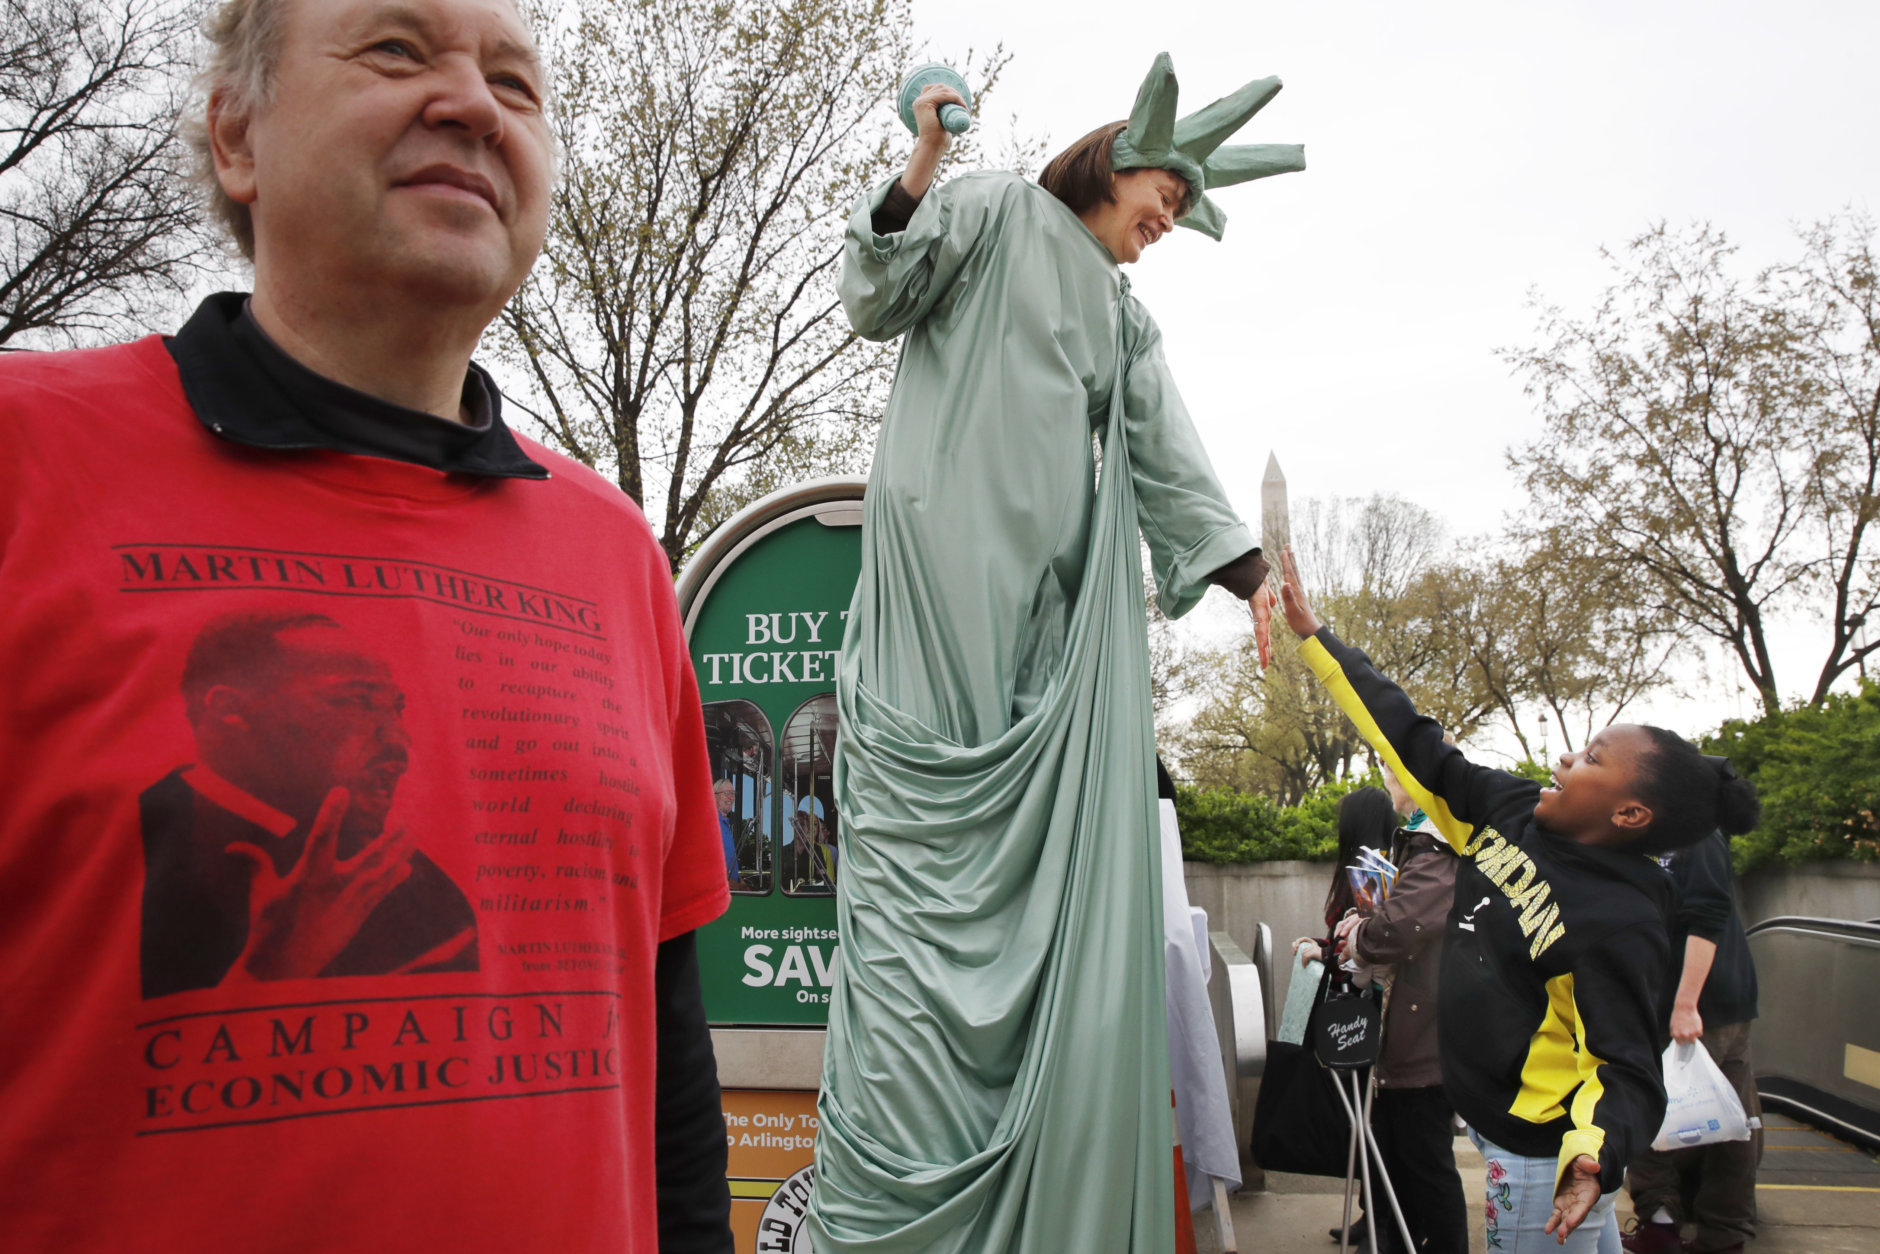 """Debbie Davis, of Milwaukee, Wisc., dressed on stilts as """"lady liberty,"""" gets a high five from Trinity Mitchell, 8, of Canton, Ohio, as they attend the A.C.T. To End Racism rally, Wednesday, April 4, 2018, on the National Mall in Washington, on the 50th anniversary of Martin Luther King Jr.'s assassination. At left is Art Laffin, of Washington. (AP Photo/Jacquelyn Martin)"""